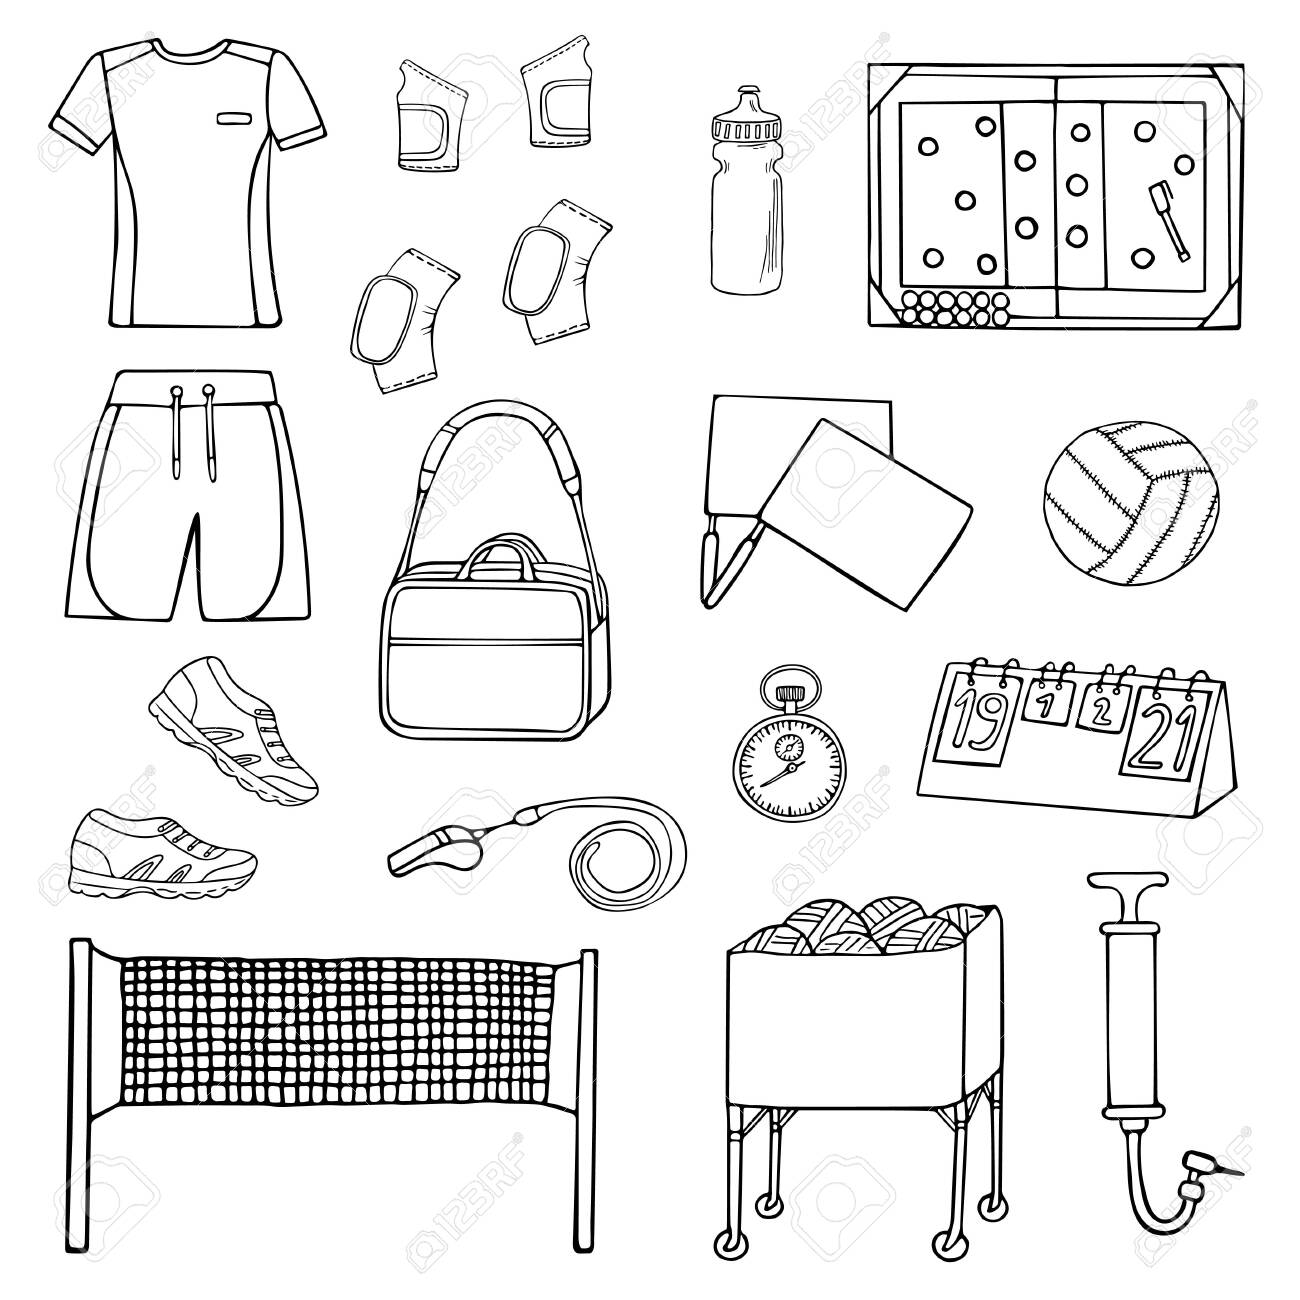 Set Of Doodle Volleyball Ball, Clothing, Net, Etc. Icons Set... Royalty Free Cliparts, Vectors, And Stock Illustration. Image 123687290.